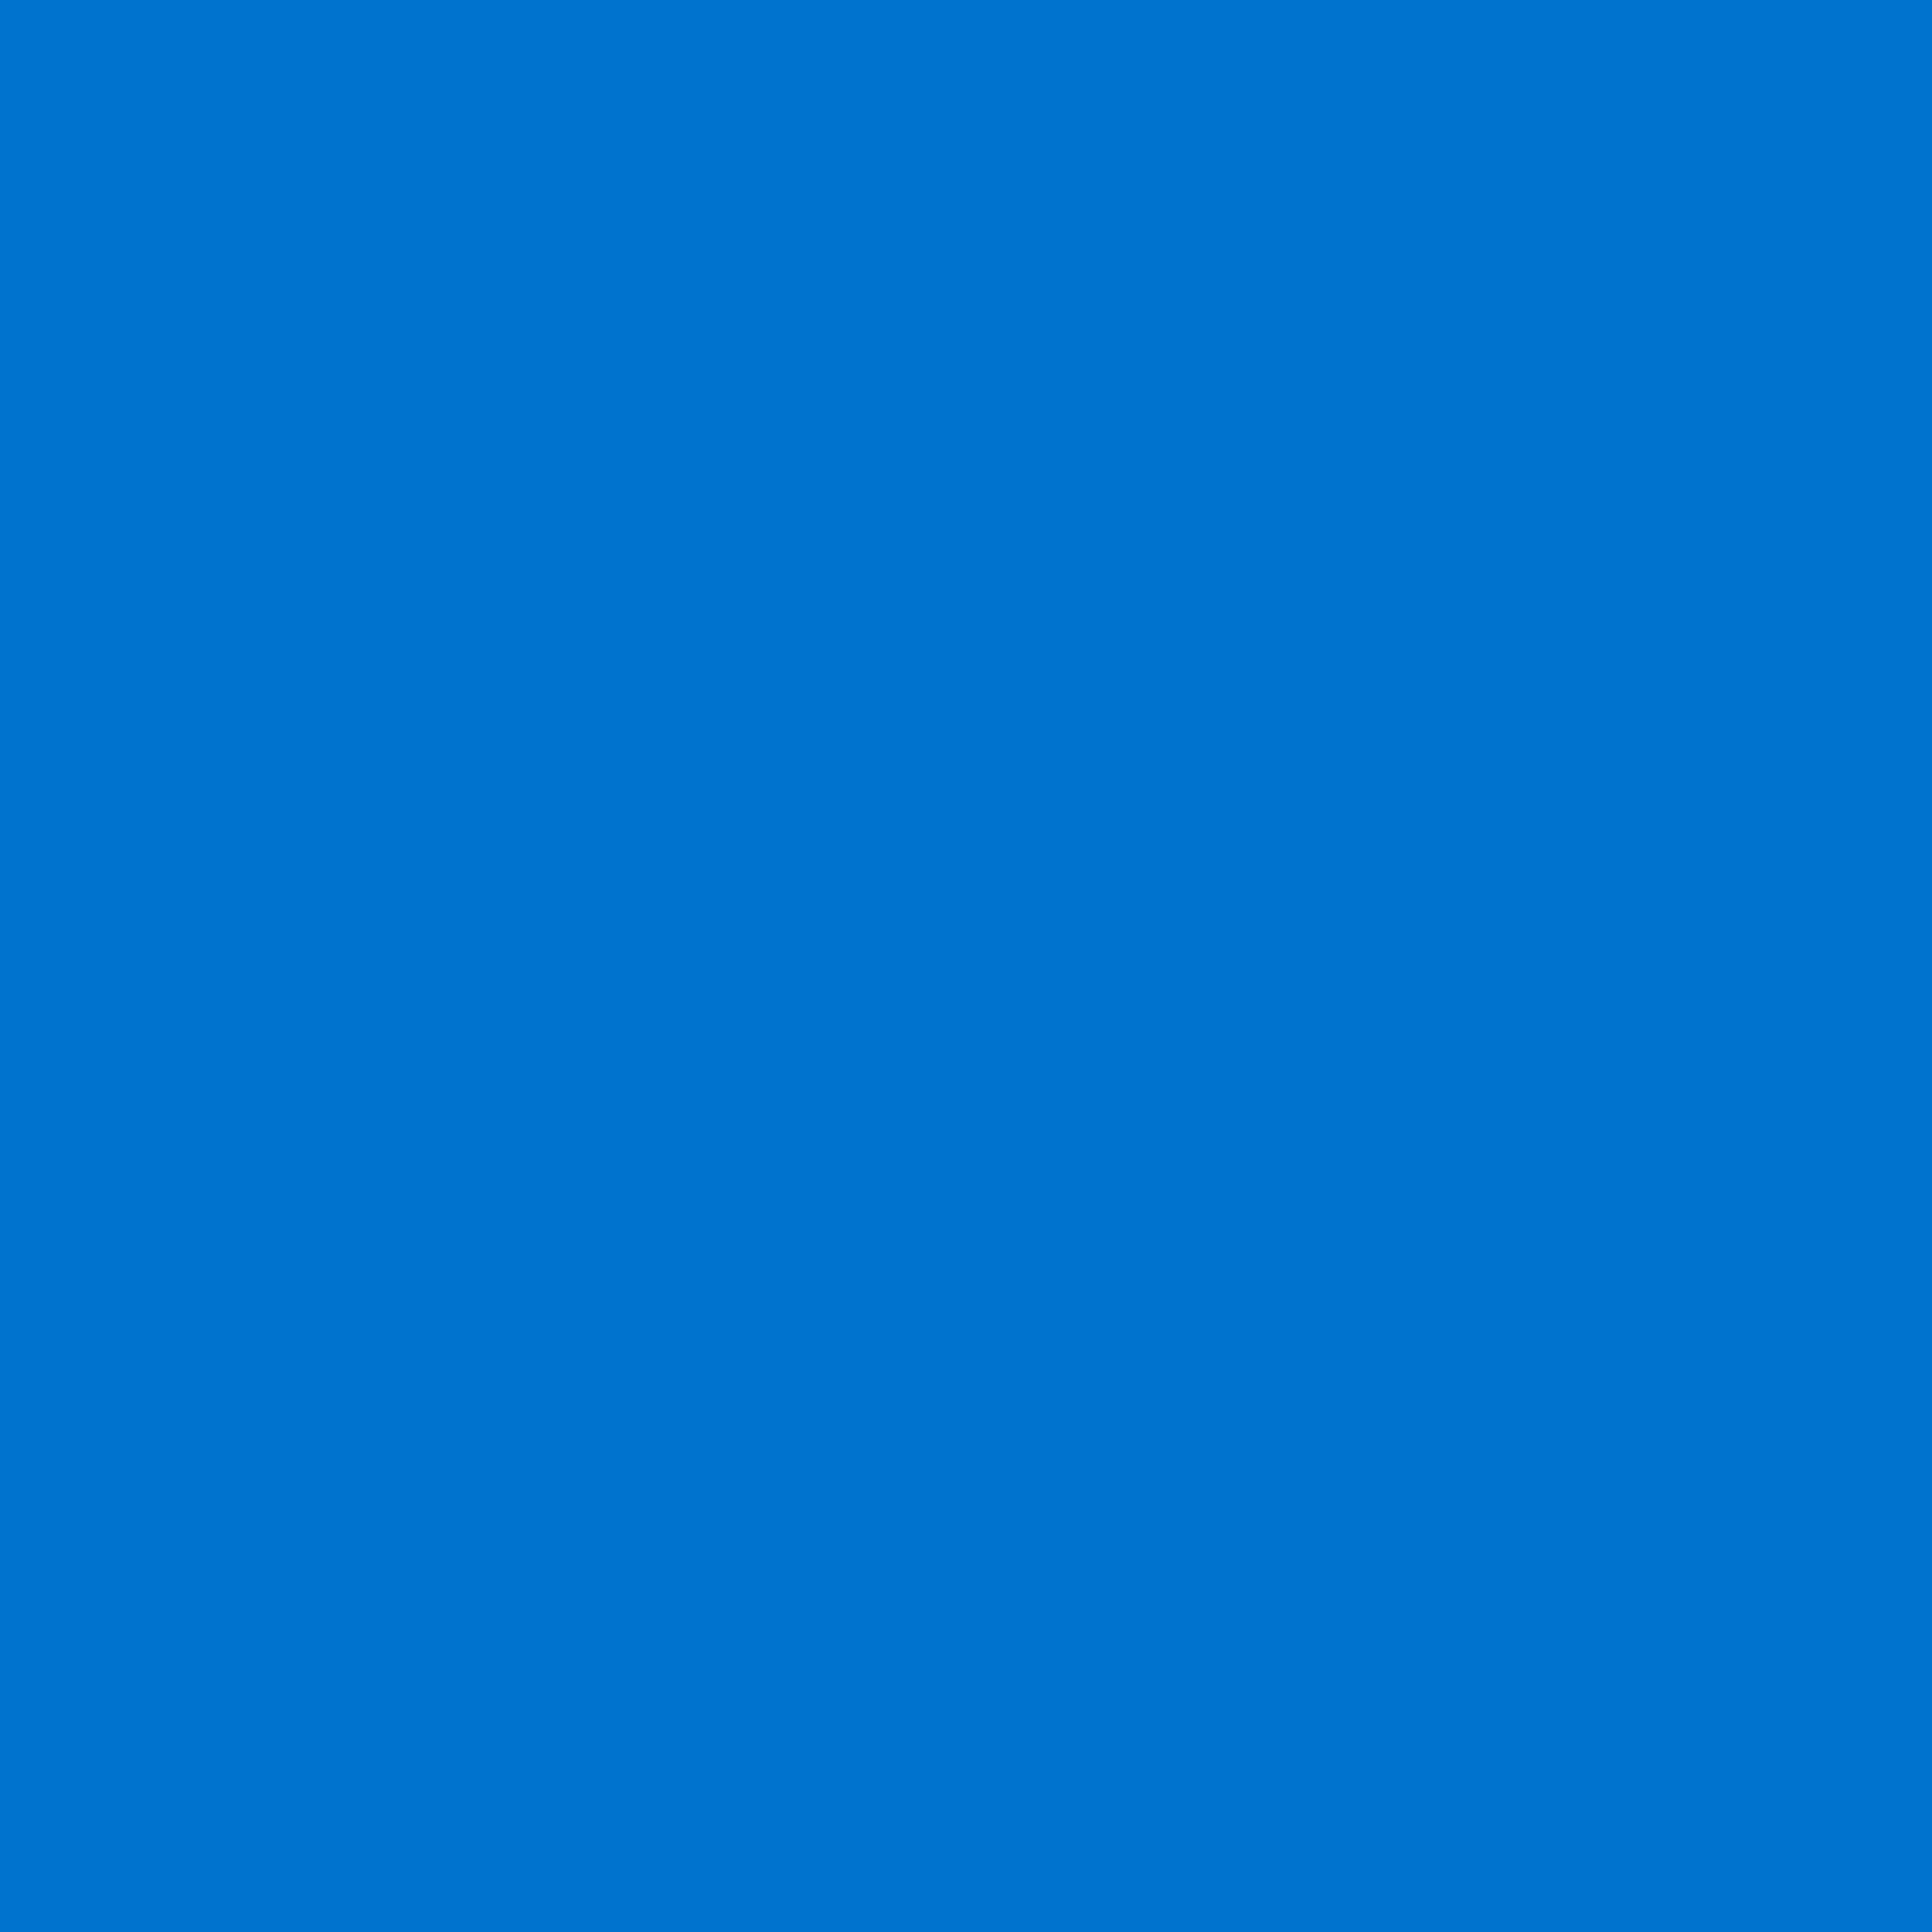 2732x2732 True Blue Solid Color Background